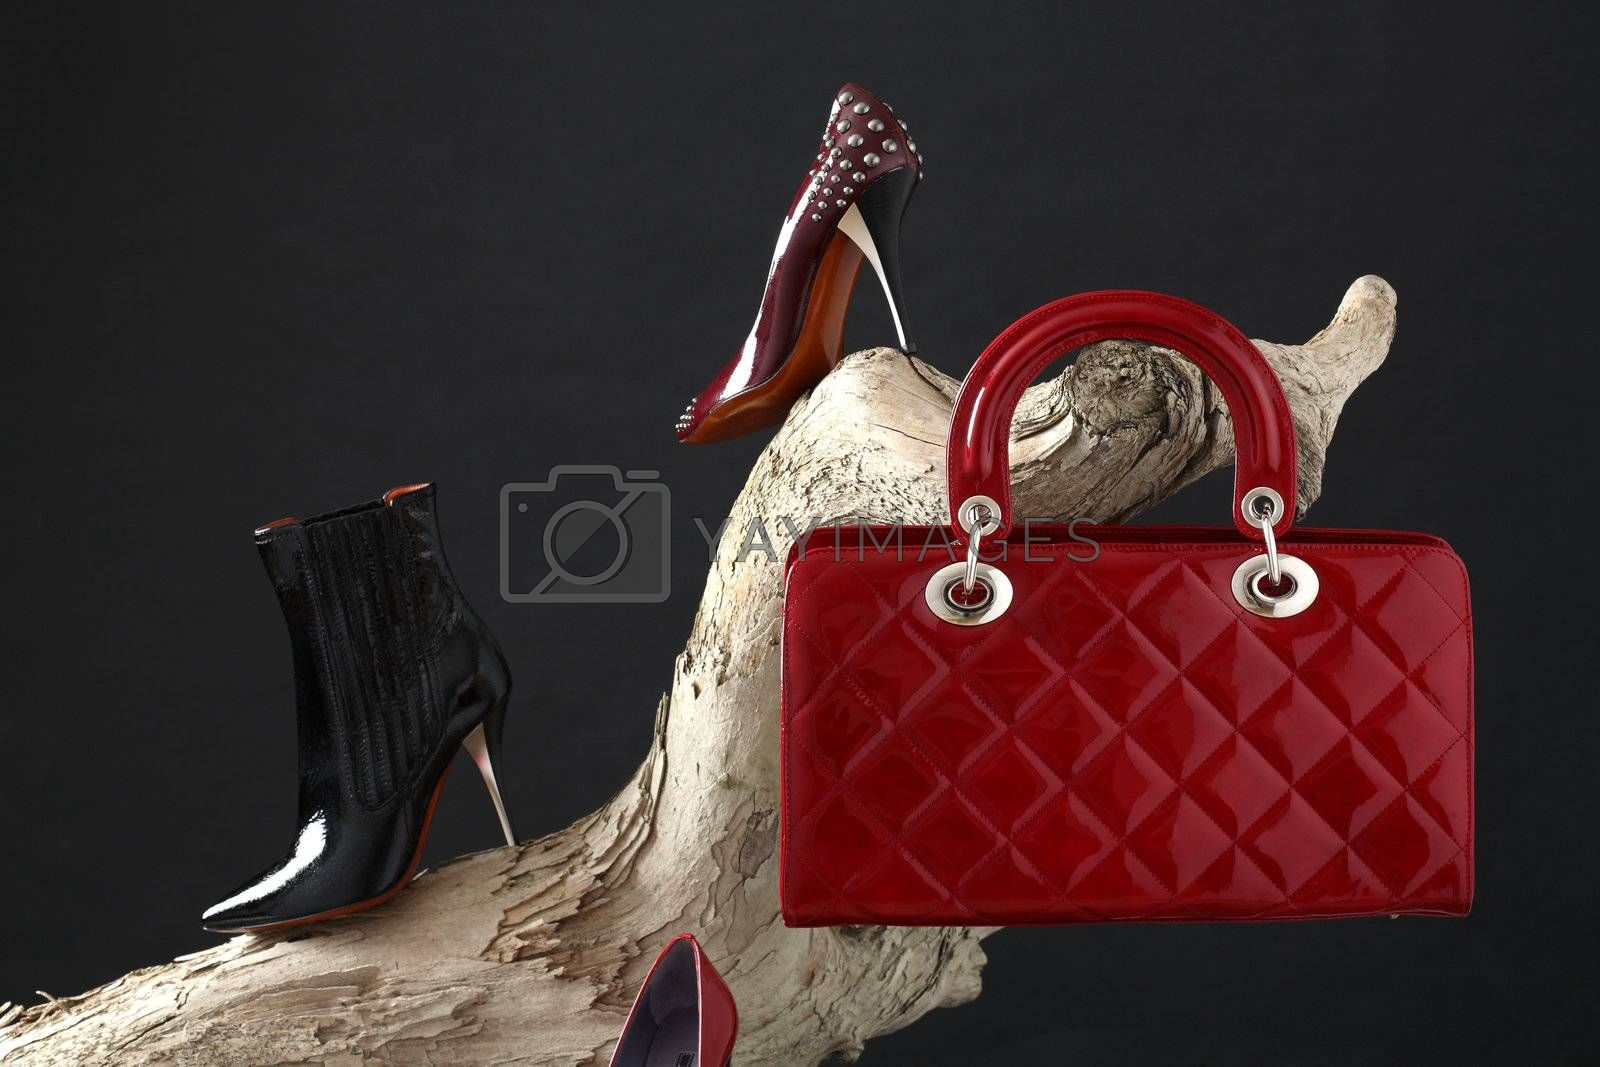 shoes and handbag composition